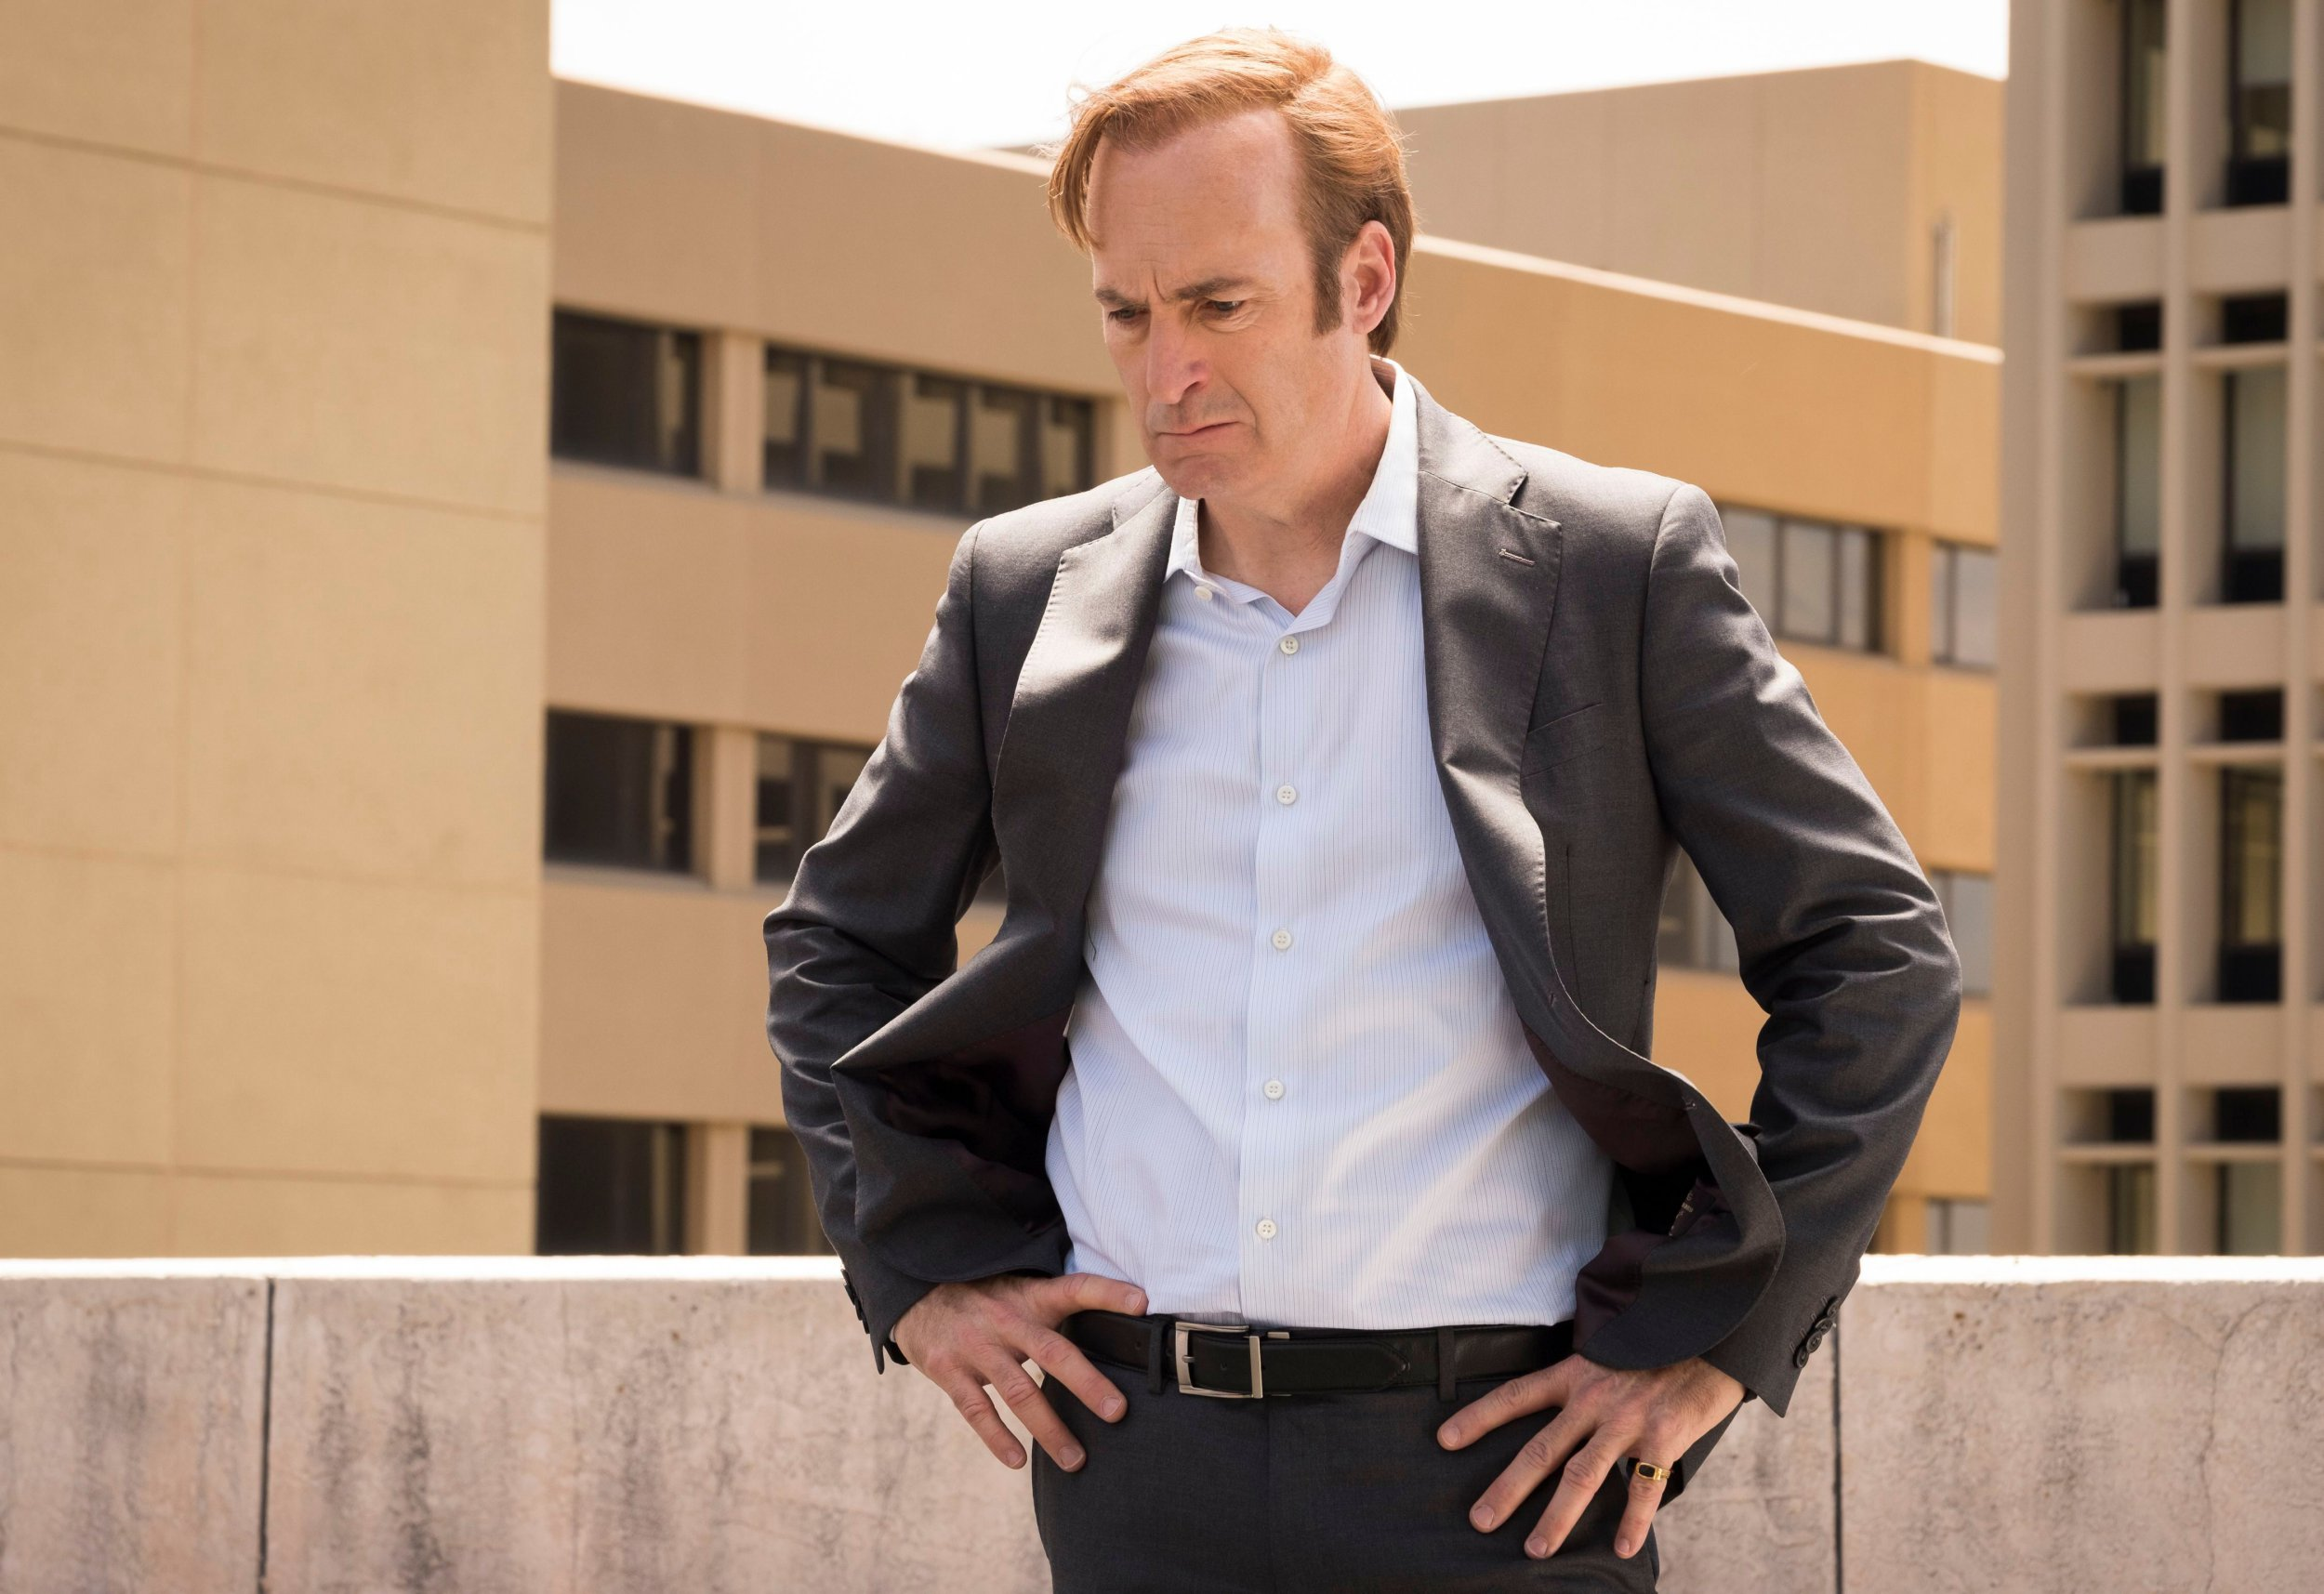 Better Call Saul star 'confirms' show is 'ending after season 6'